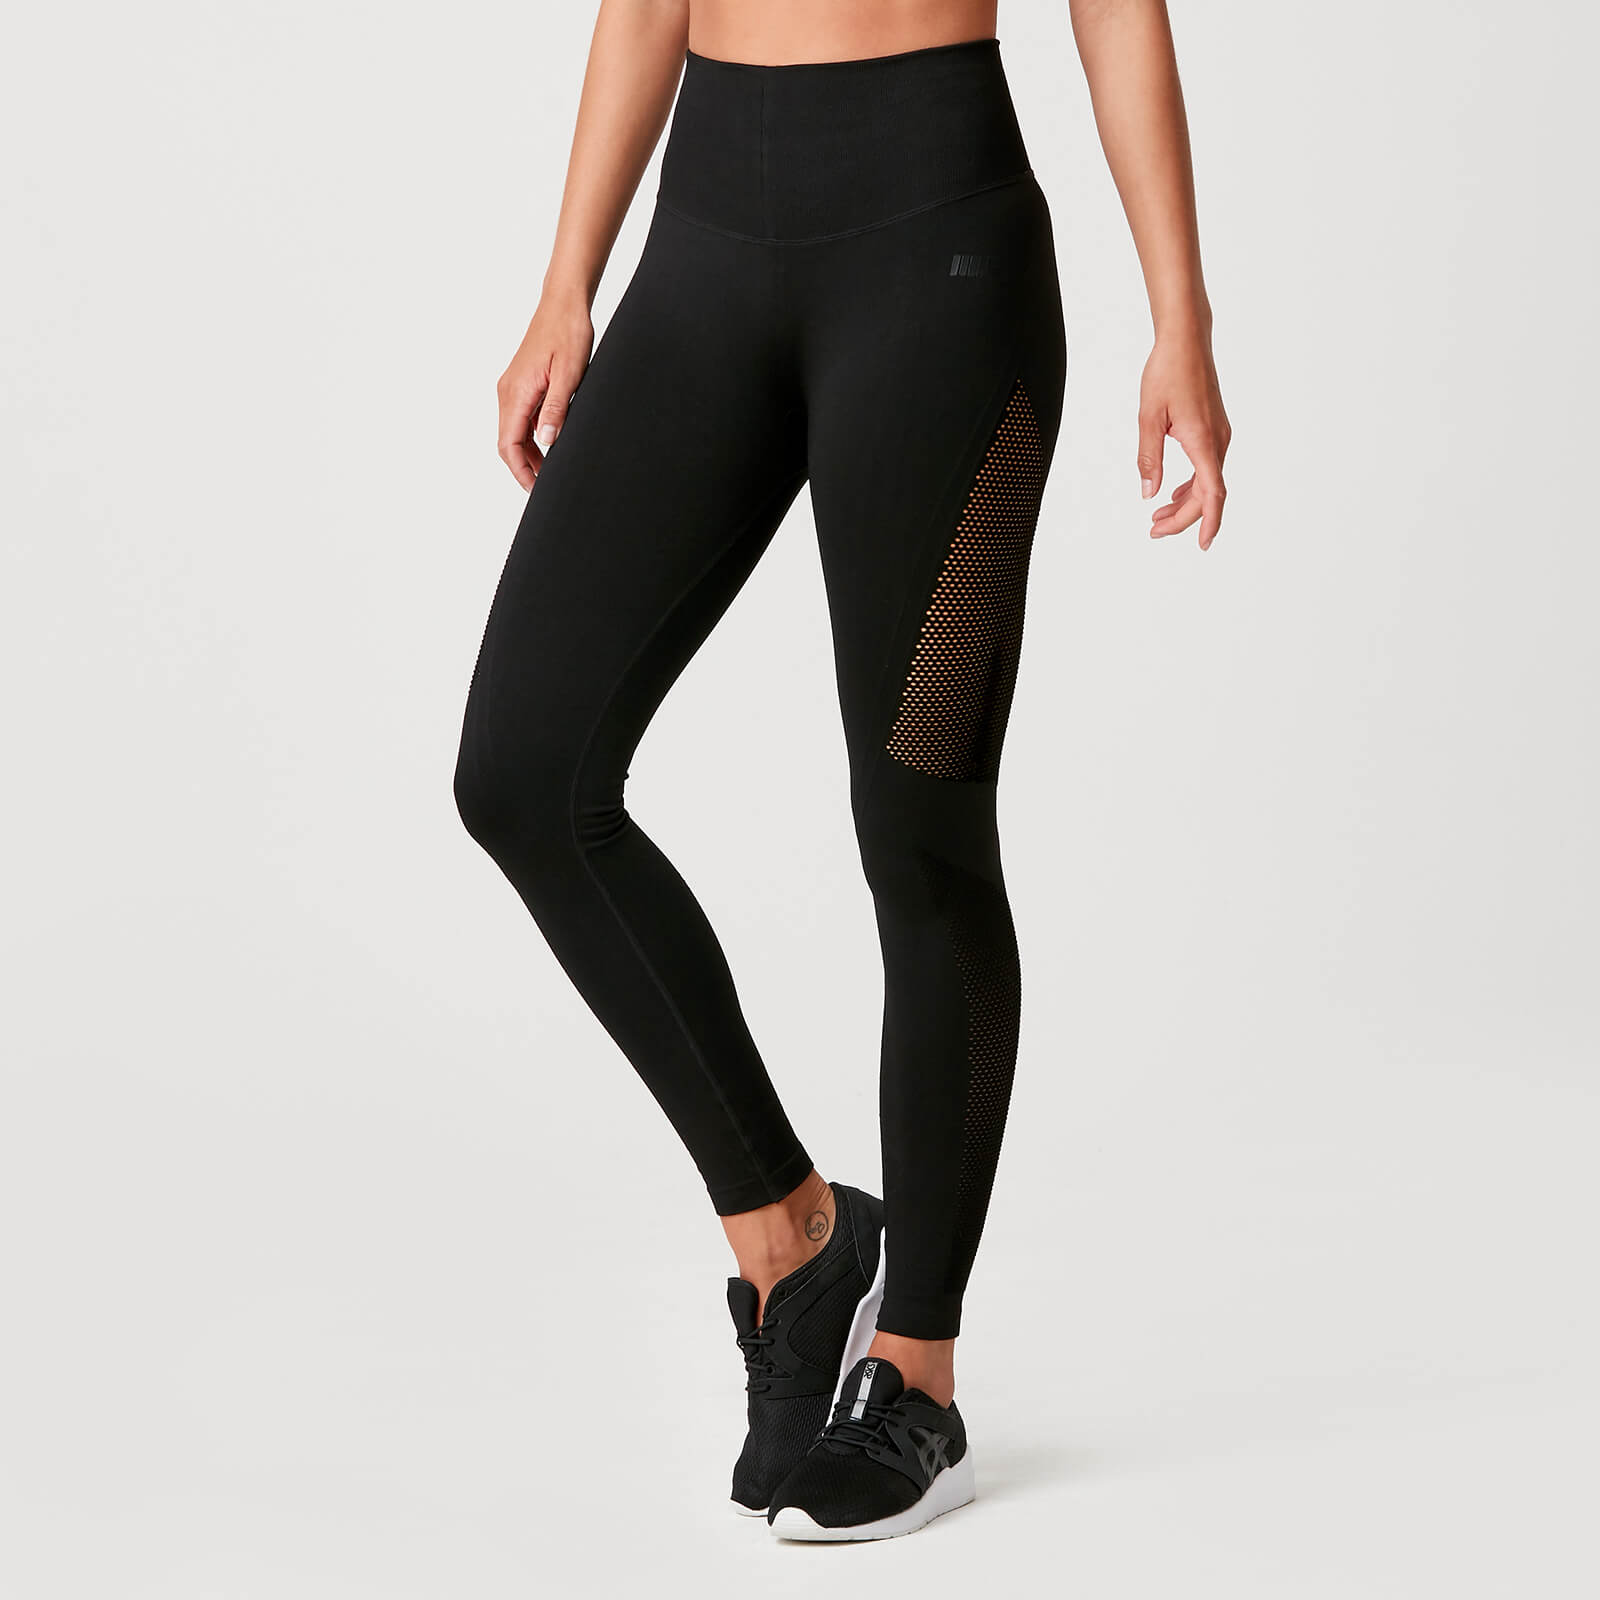 Luxe Seamless Leggings - Black - M